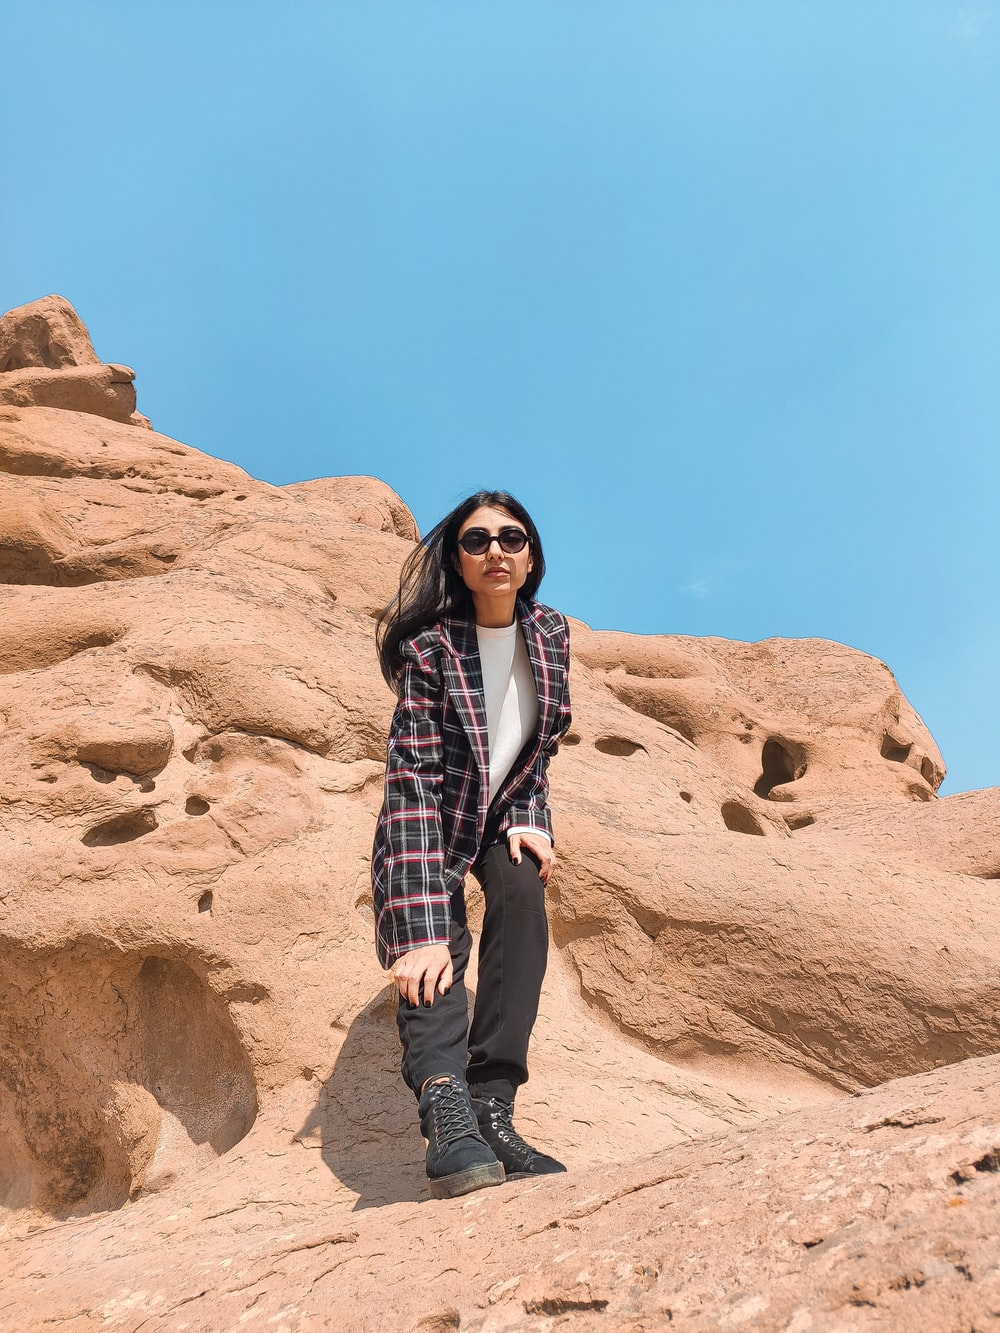 woman in black and white plaid dress shirt standing on brown rock formation during daytime